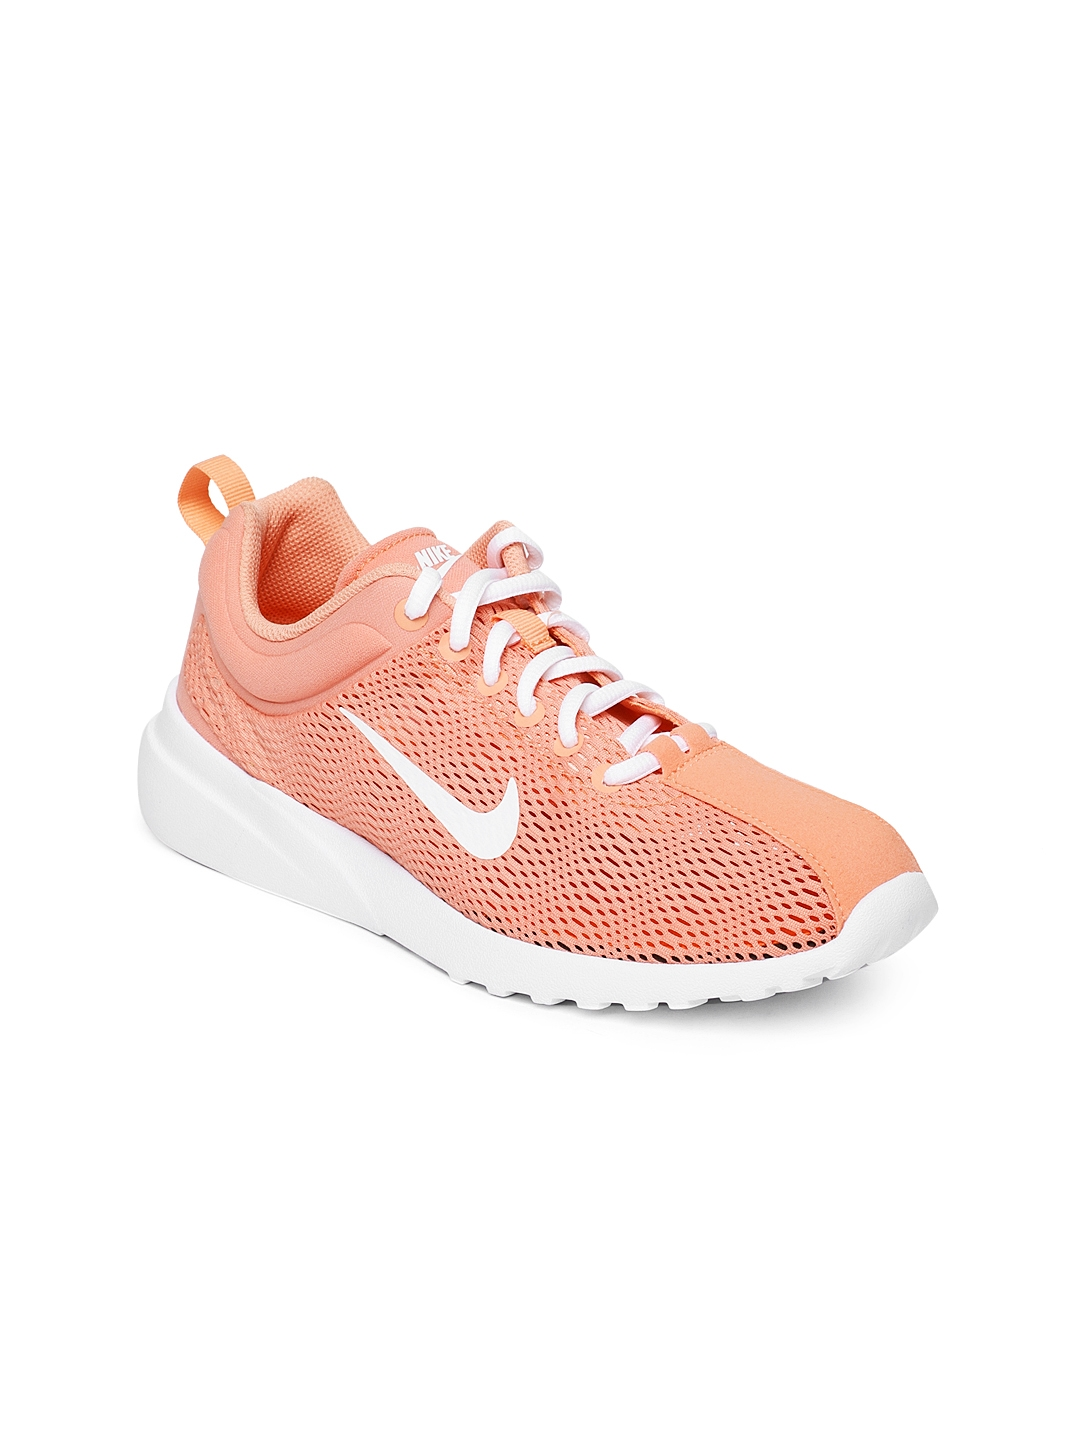 533e7a7fd Buy Nike Women Peach Coloured Superflyte Sneakers - Casual Shoes for ...